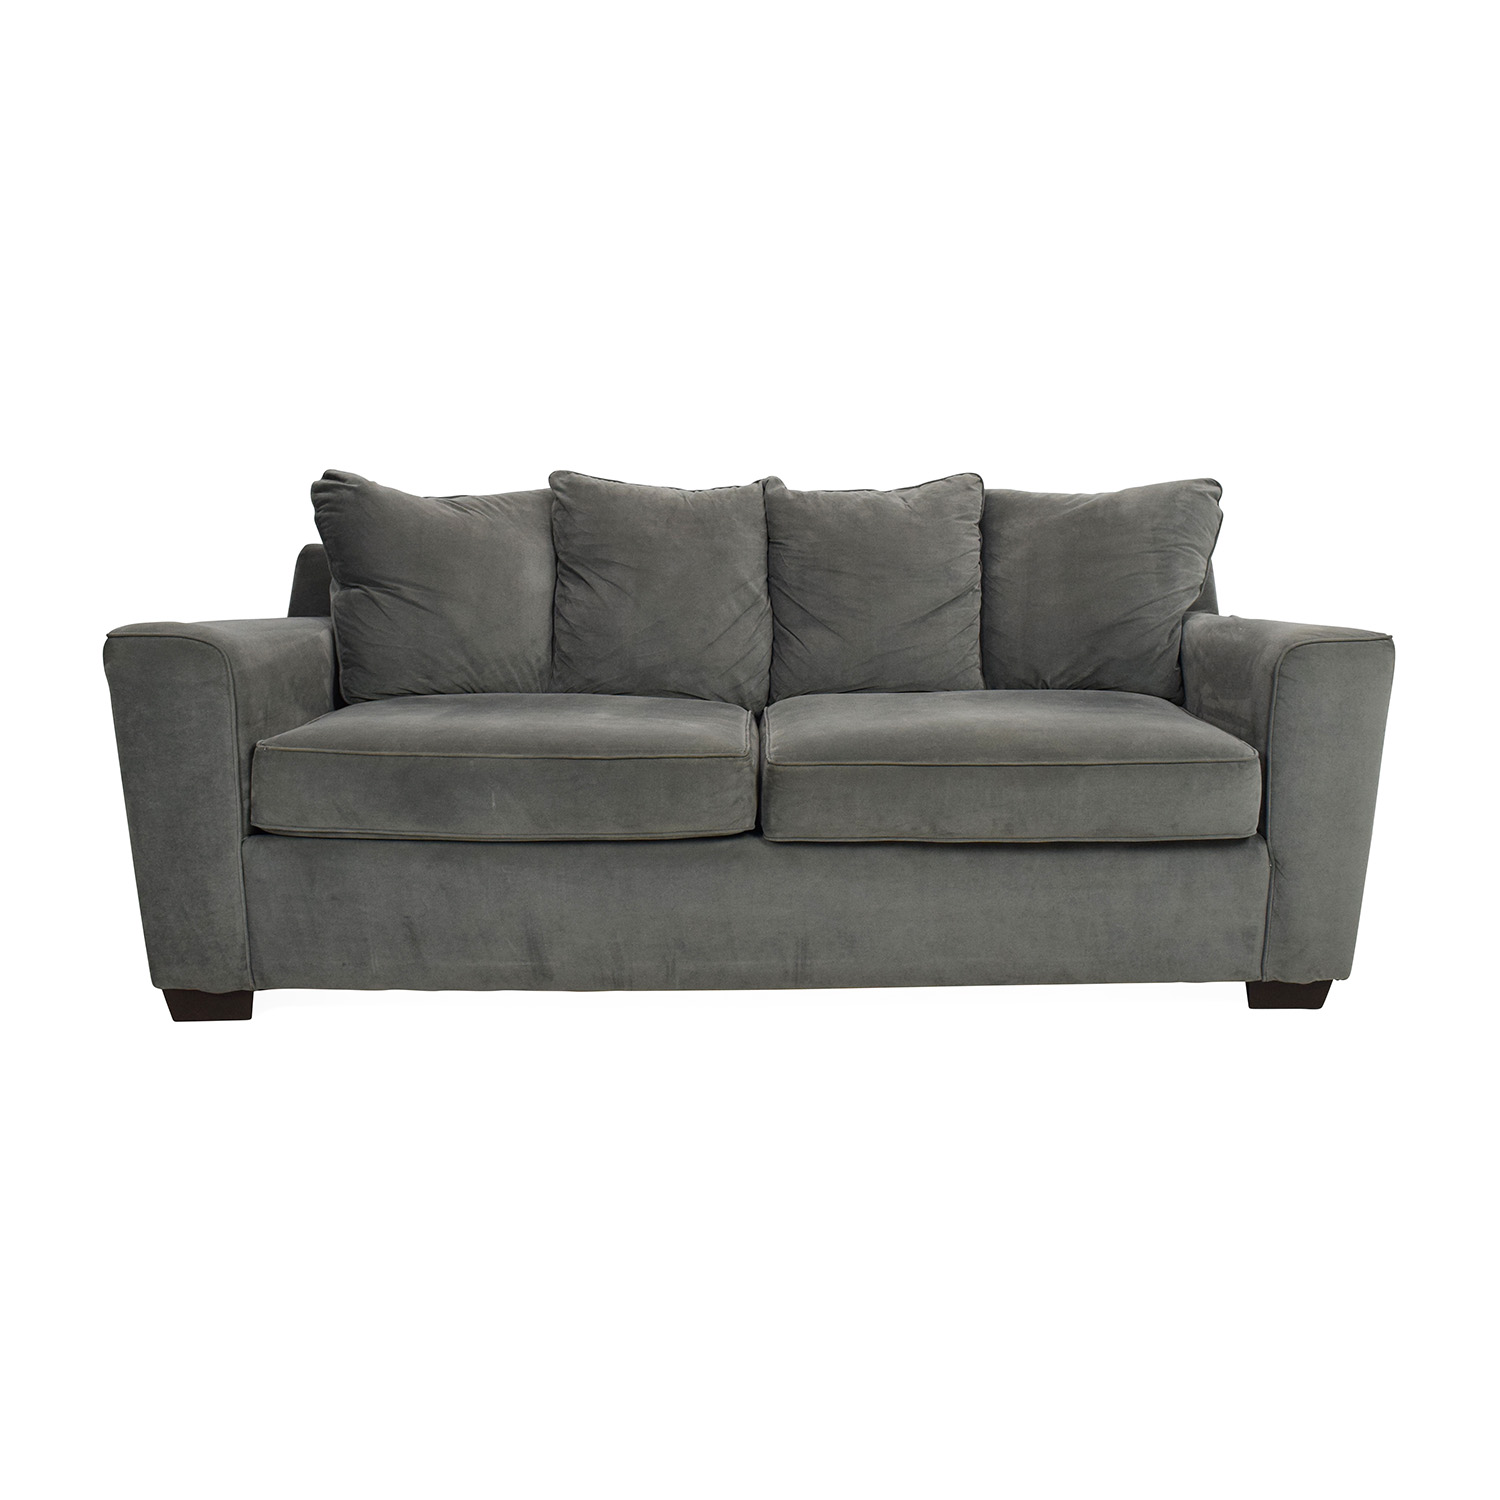 Jennifer Convertibles Jennifer Convertibles Grey Couch price